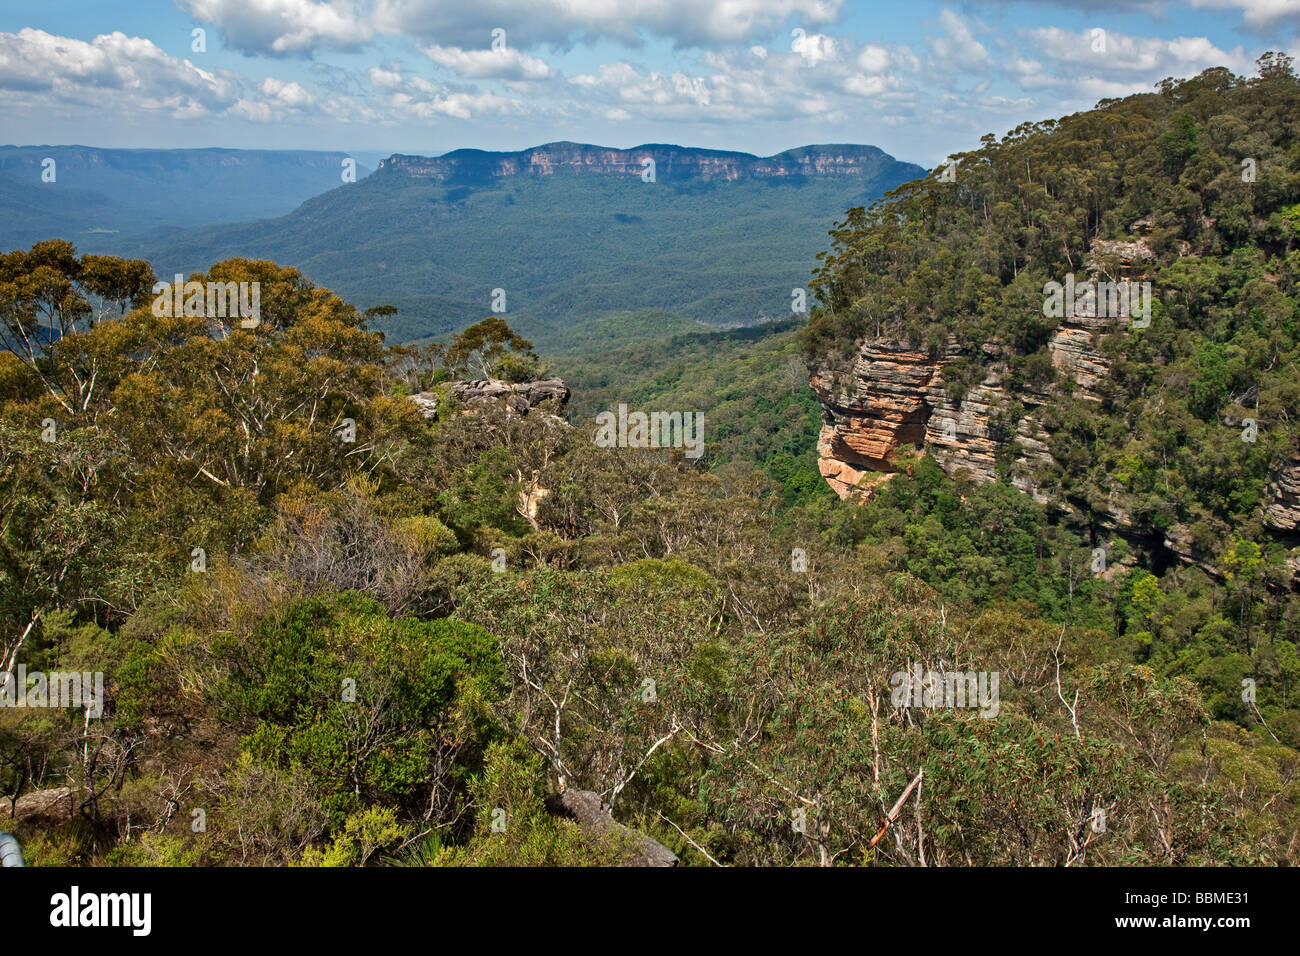 Australia, New South Wales. A view of the Jamison Valley in the Blue Mountains from Prince Henry Cliff Walk. Stock Photo